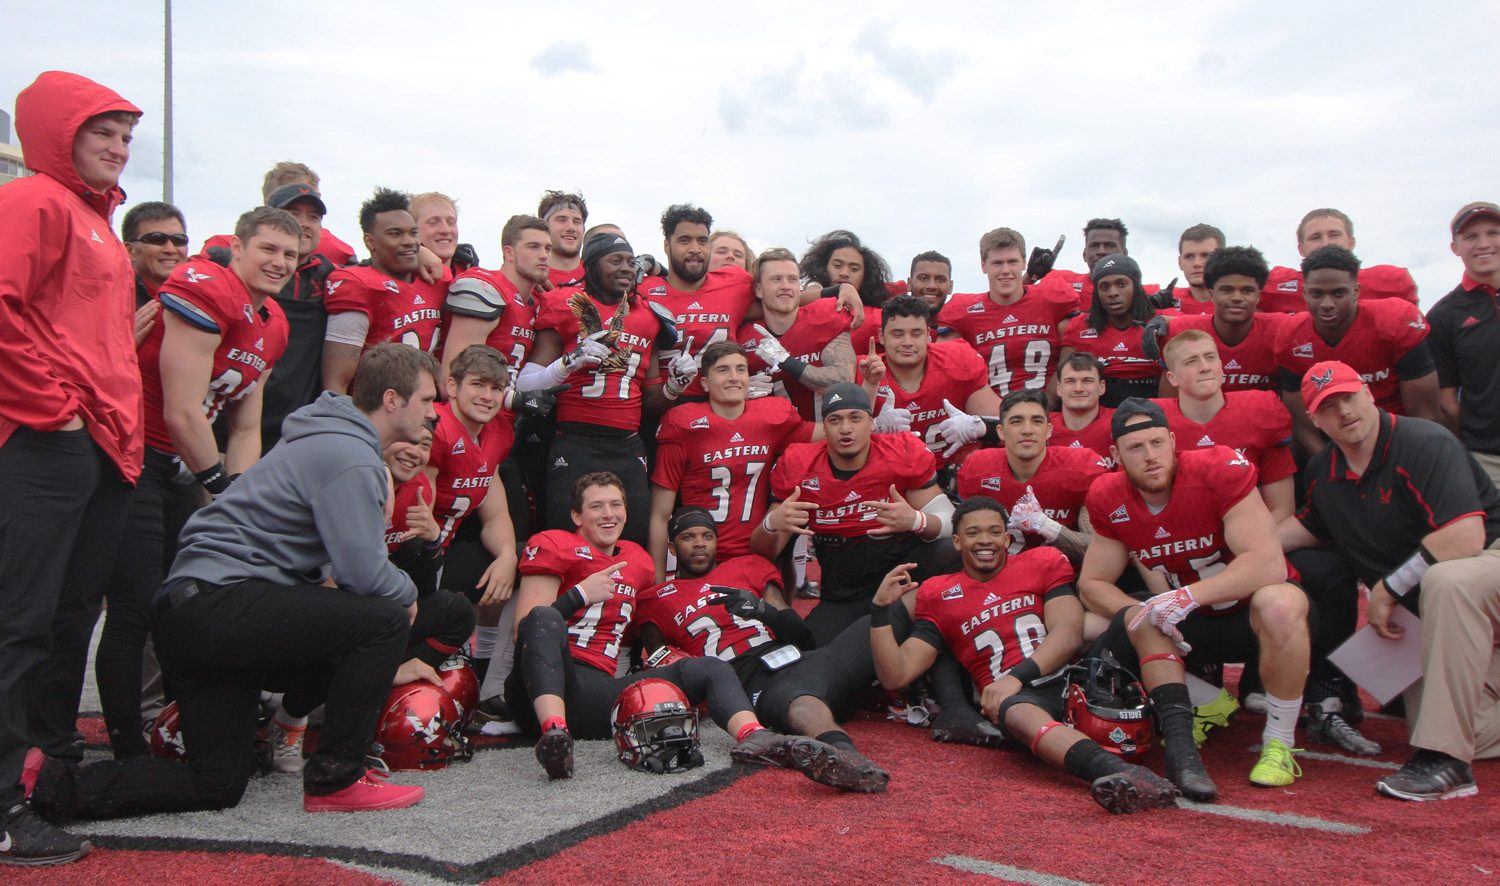 The victorious red team  (24-17) posing for a photo after the Red-White spring game.